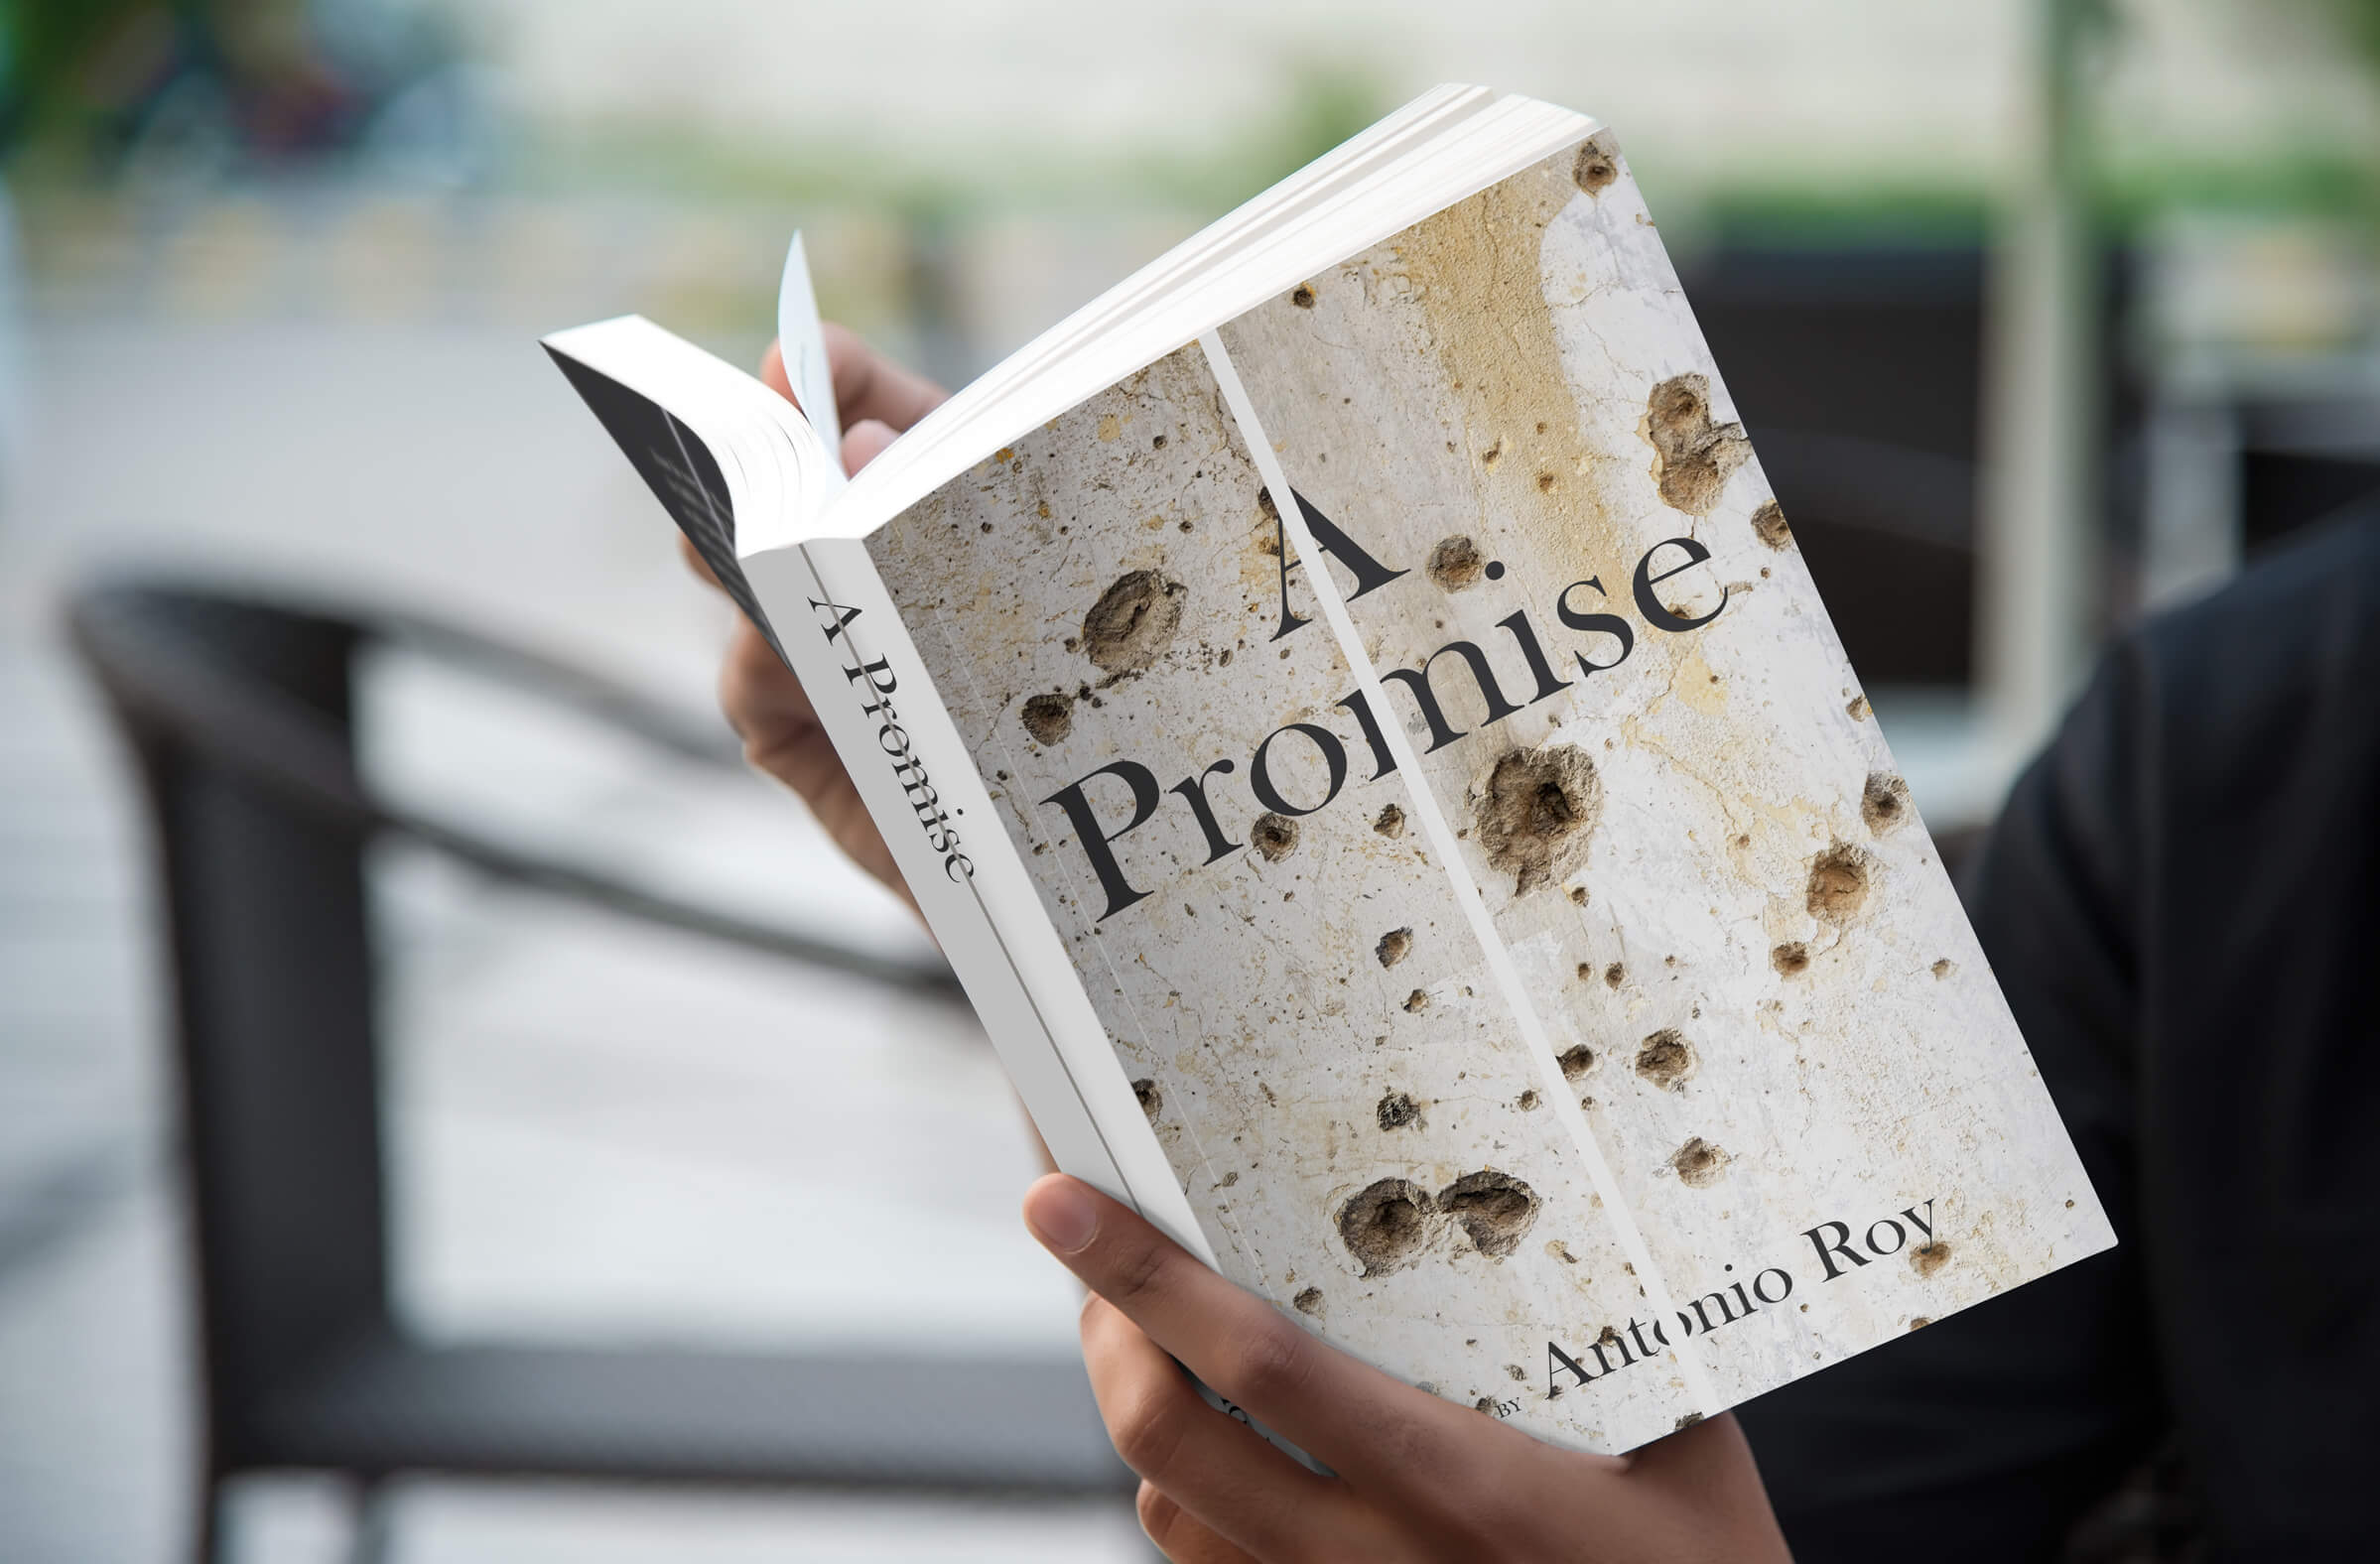 A Promise Book Cover Design 1 by Ottawa Graphic Designer idApostle